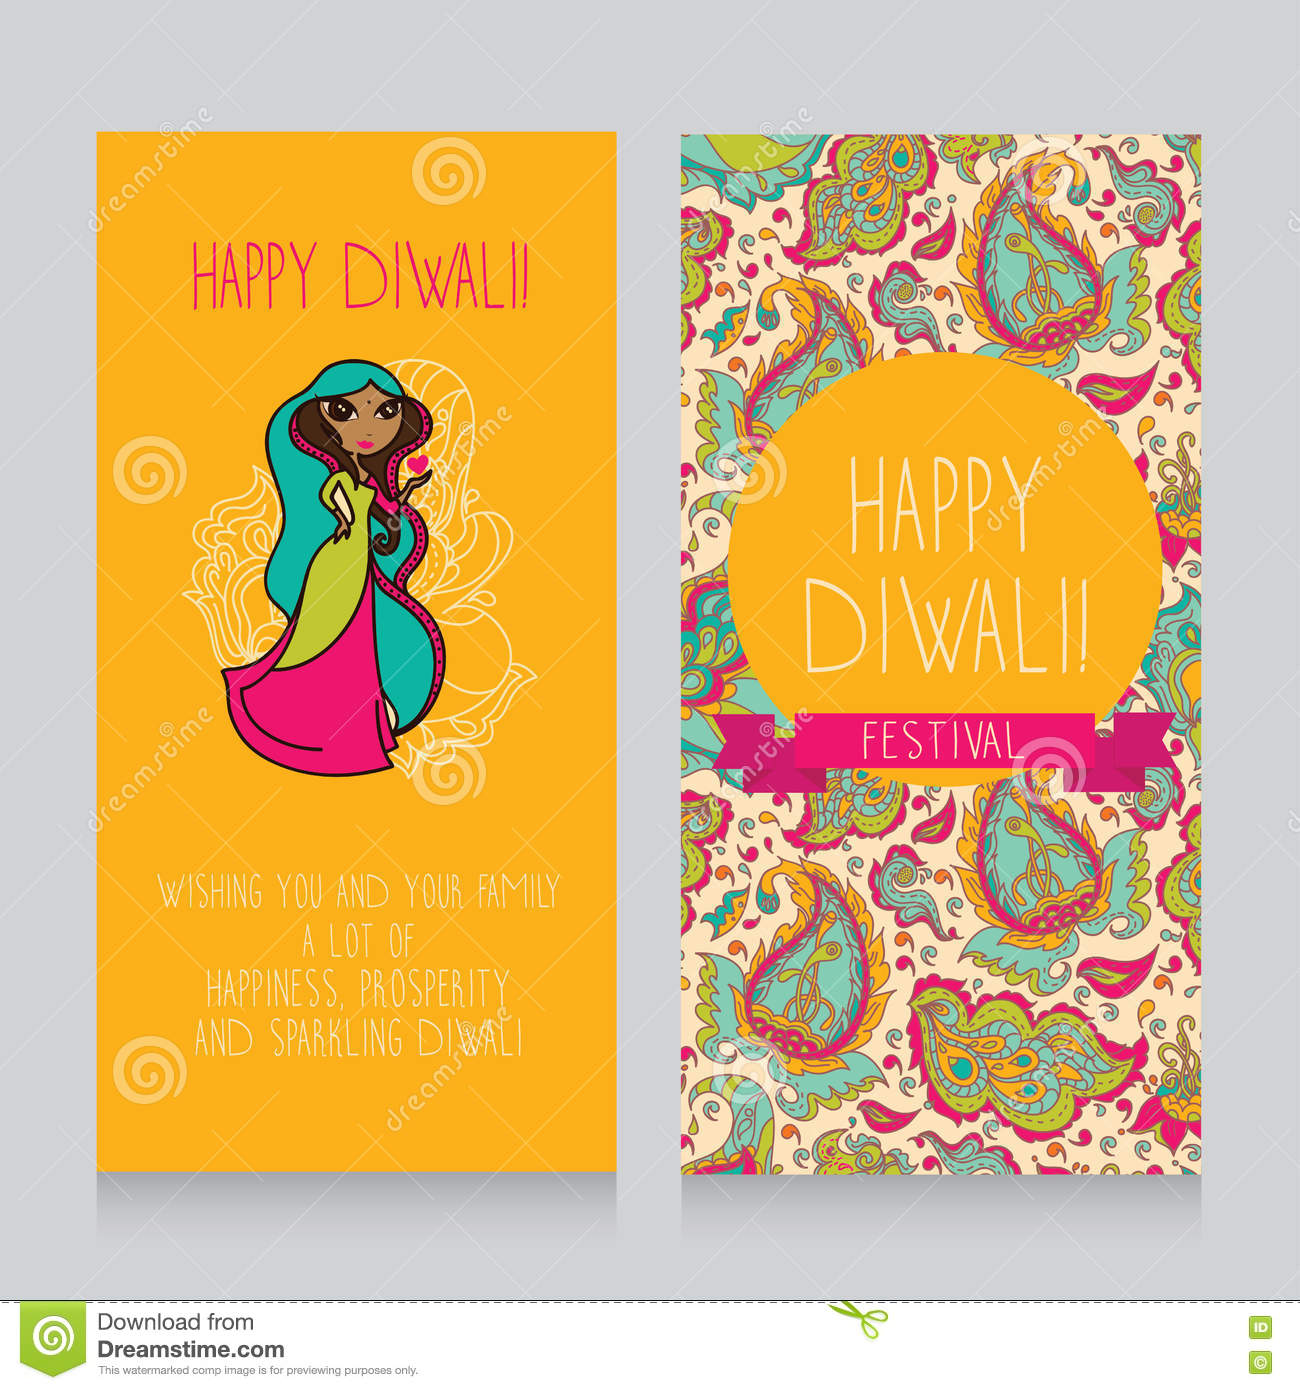 Diwali greeting cards stock vector illustration of diwali 75345577 diwali greeting cards blank doodle royalty free vector download kristyandbryce Image collections